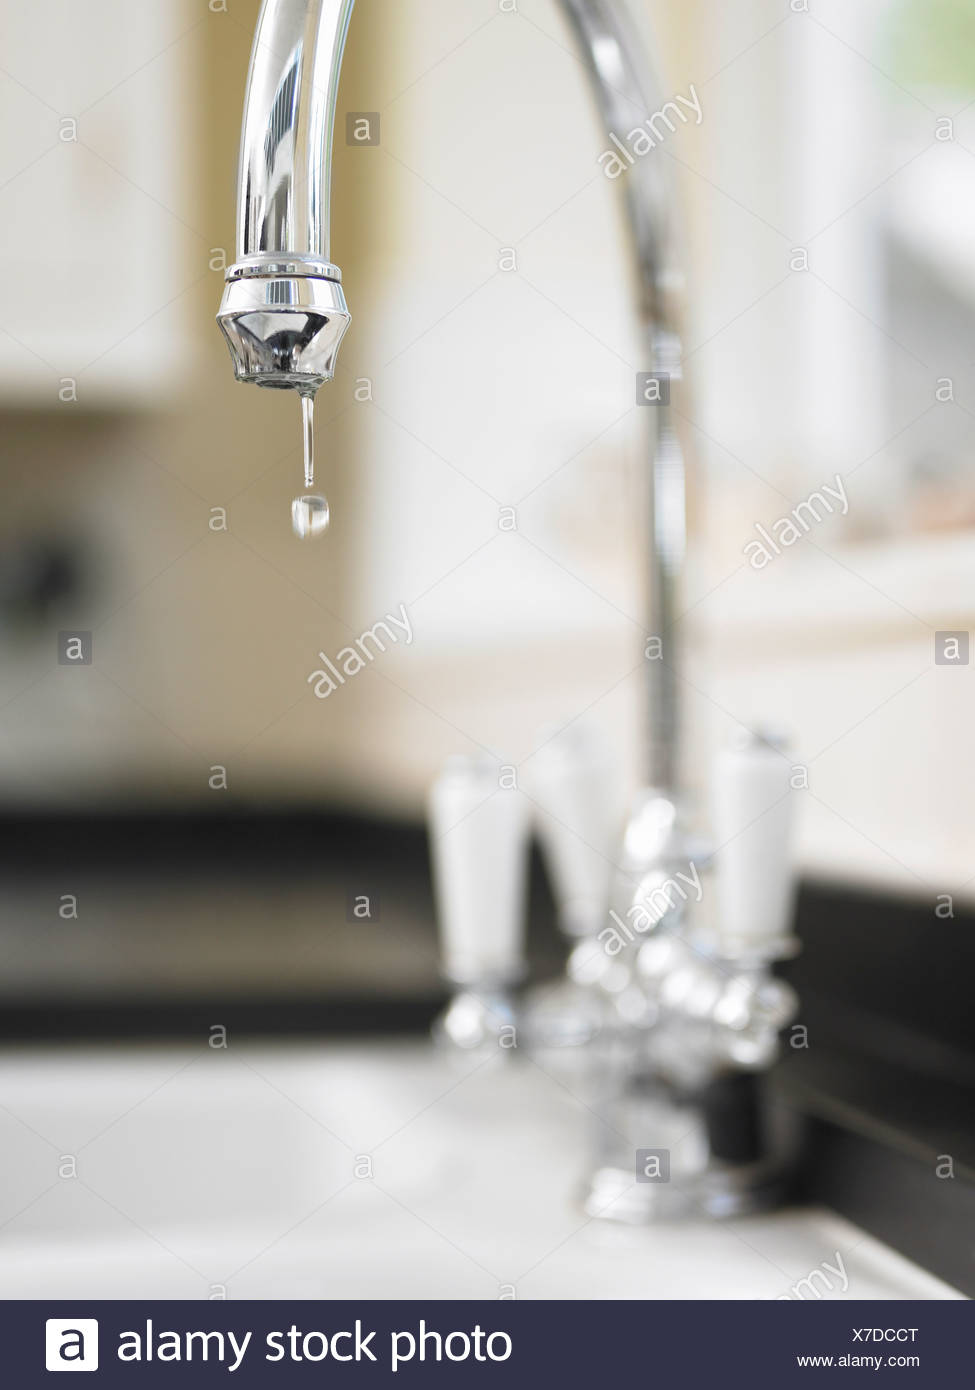 Close up of water droplet dripping from kitchen faucet - Stock Image